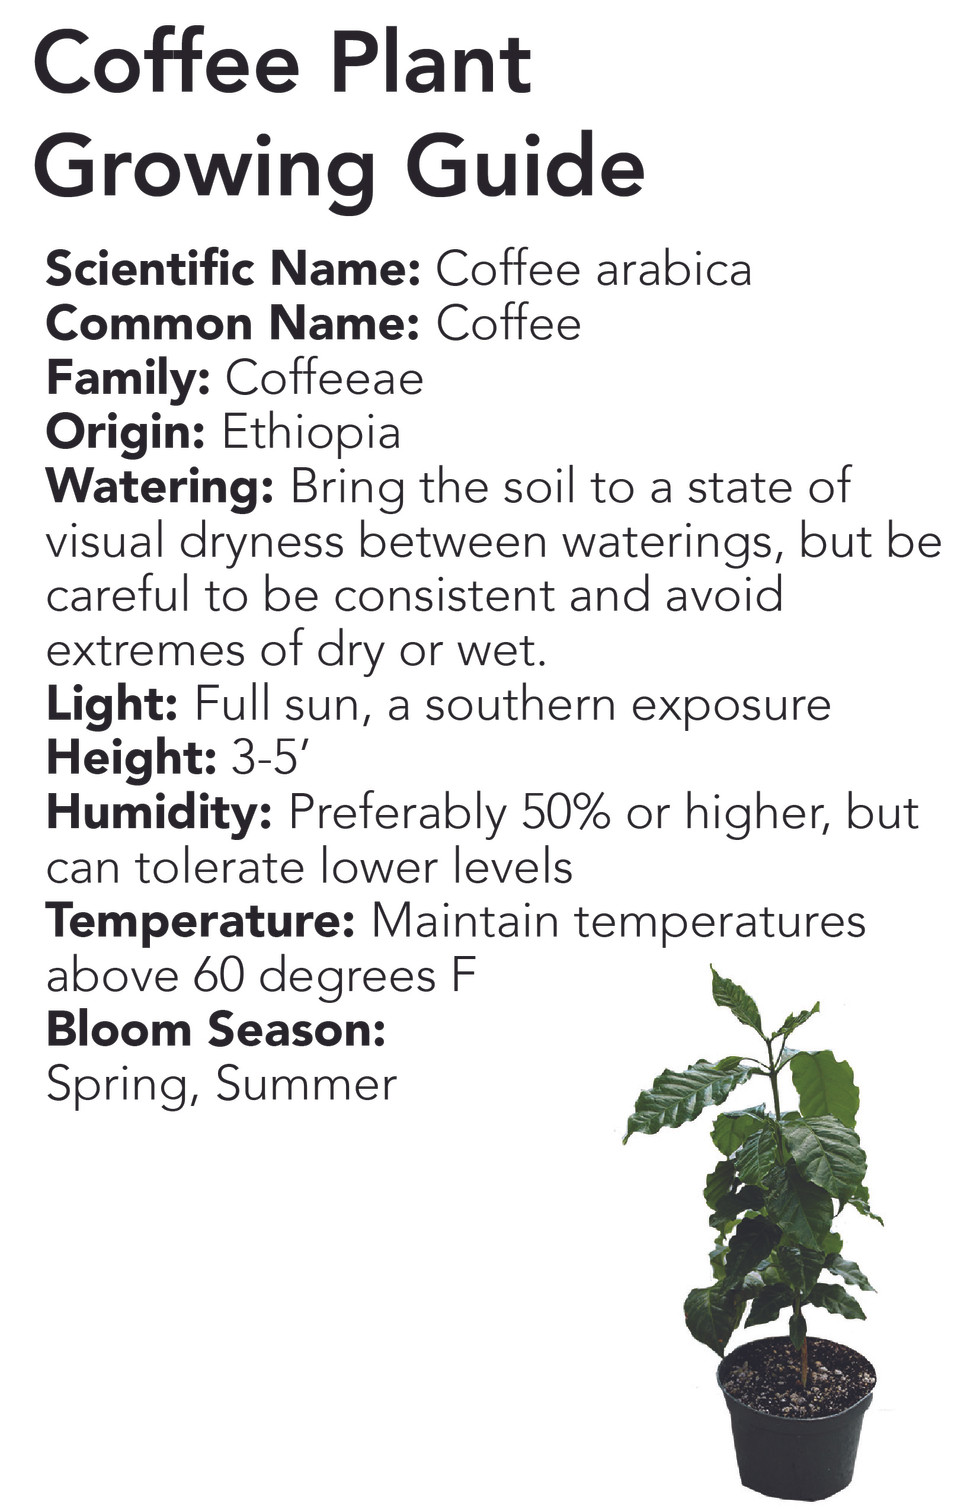 Coffee Plant Growing Guide